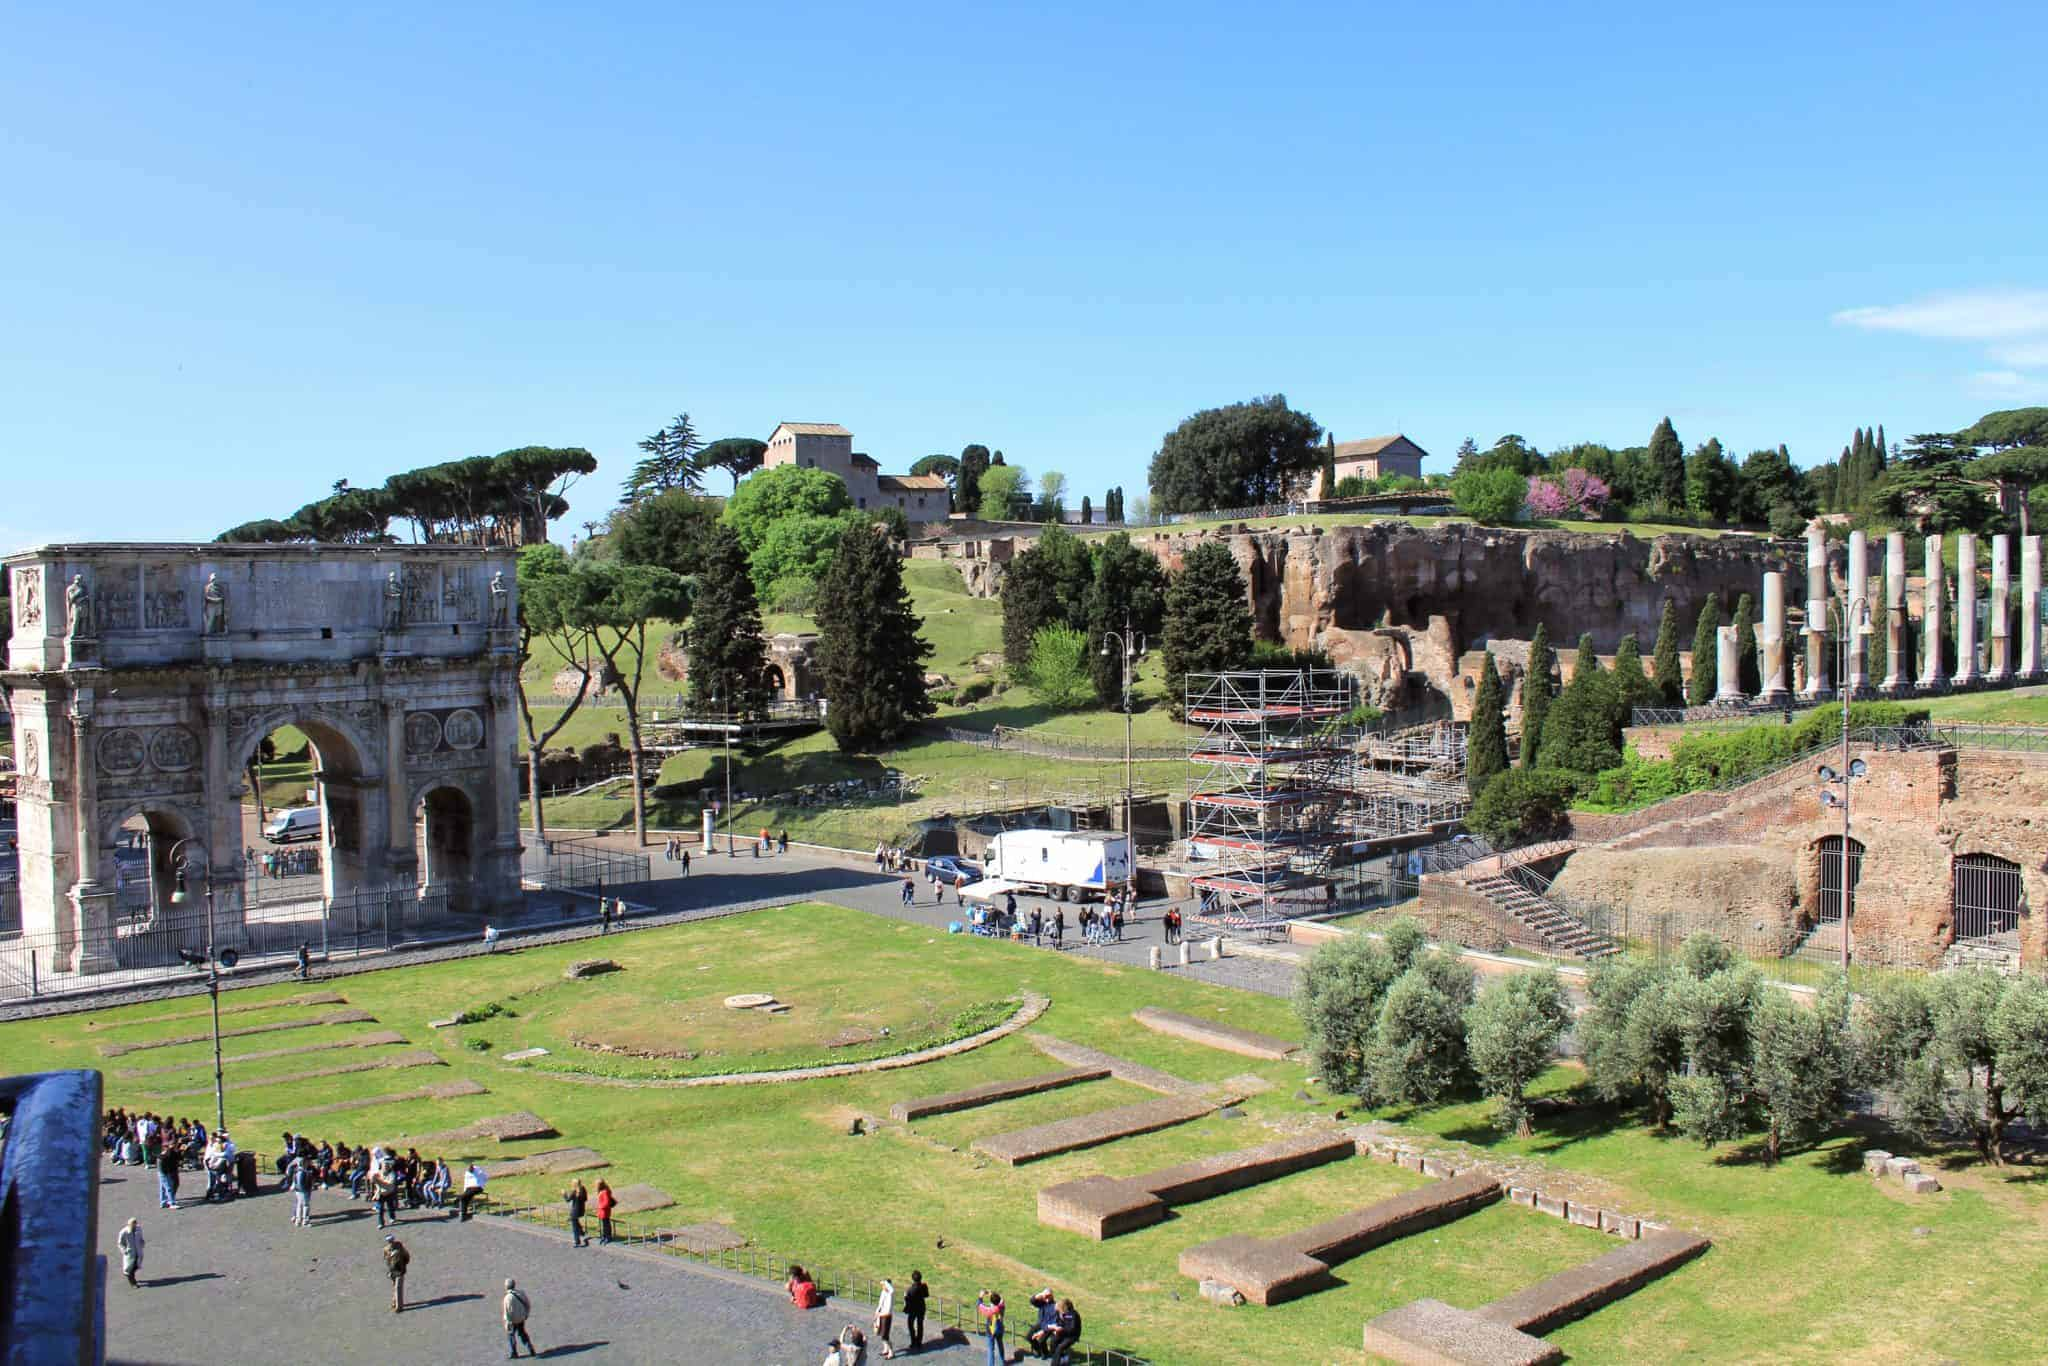 The Palatine Hill, things to do in Rome, St. Peter's Square, St. Peter's Dome in Rome, visit Rome in winter, Rome in winter, winter in Rome, Vatican city, 2-3 days Rome itinerary